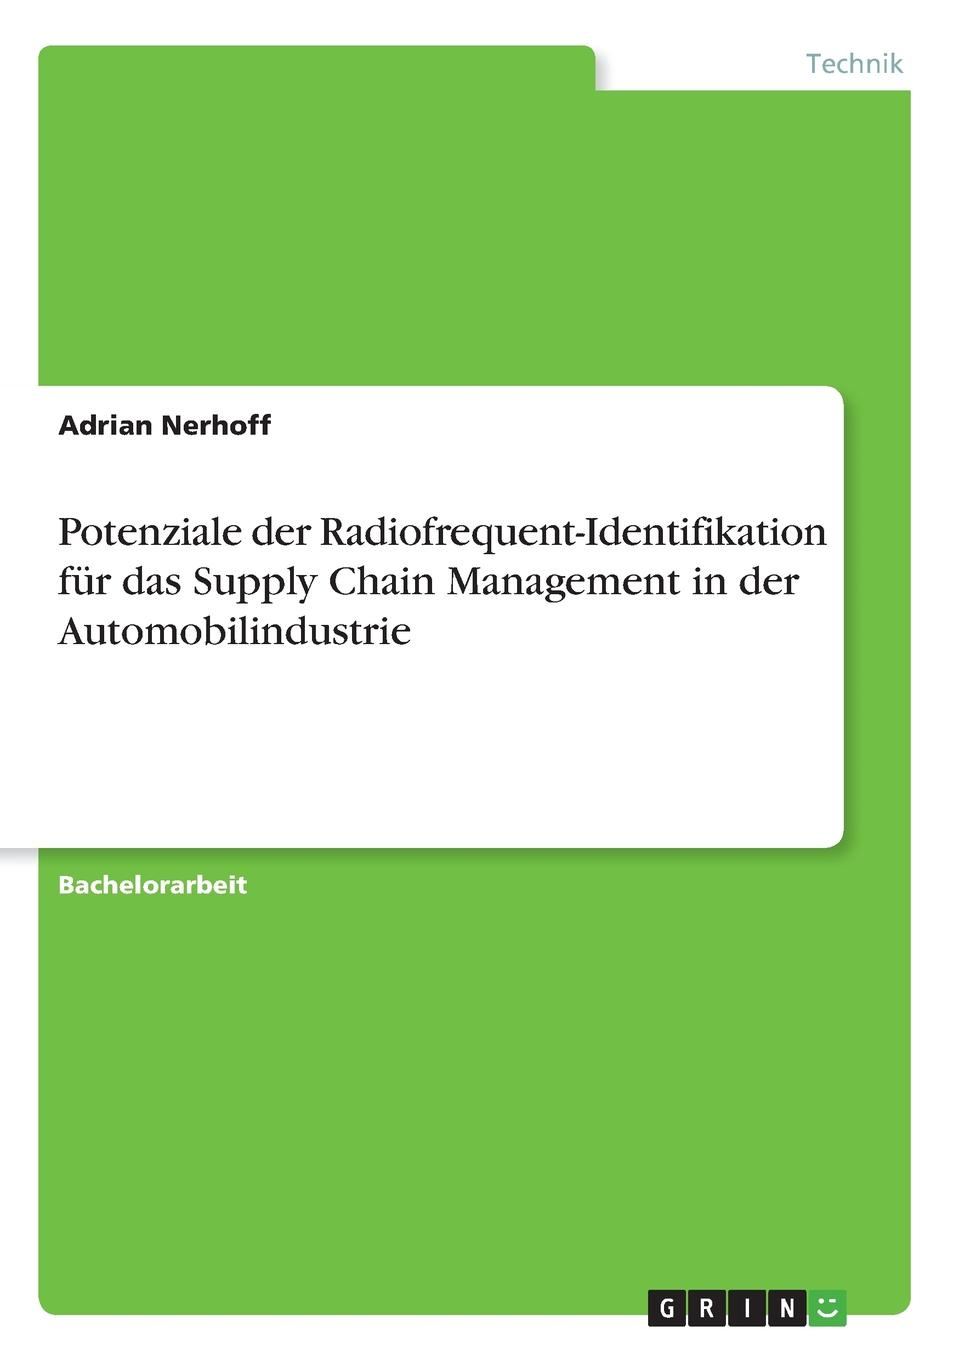 Adrian Nerhoff Potenziale der Radiofrequent-Identifikation fur das Supply Chain Management in der Automobilindustrie marcel heisig supply networks koordination uberbetrieblicher prozesse mithilfe der simulation